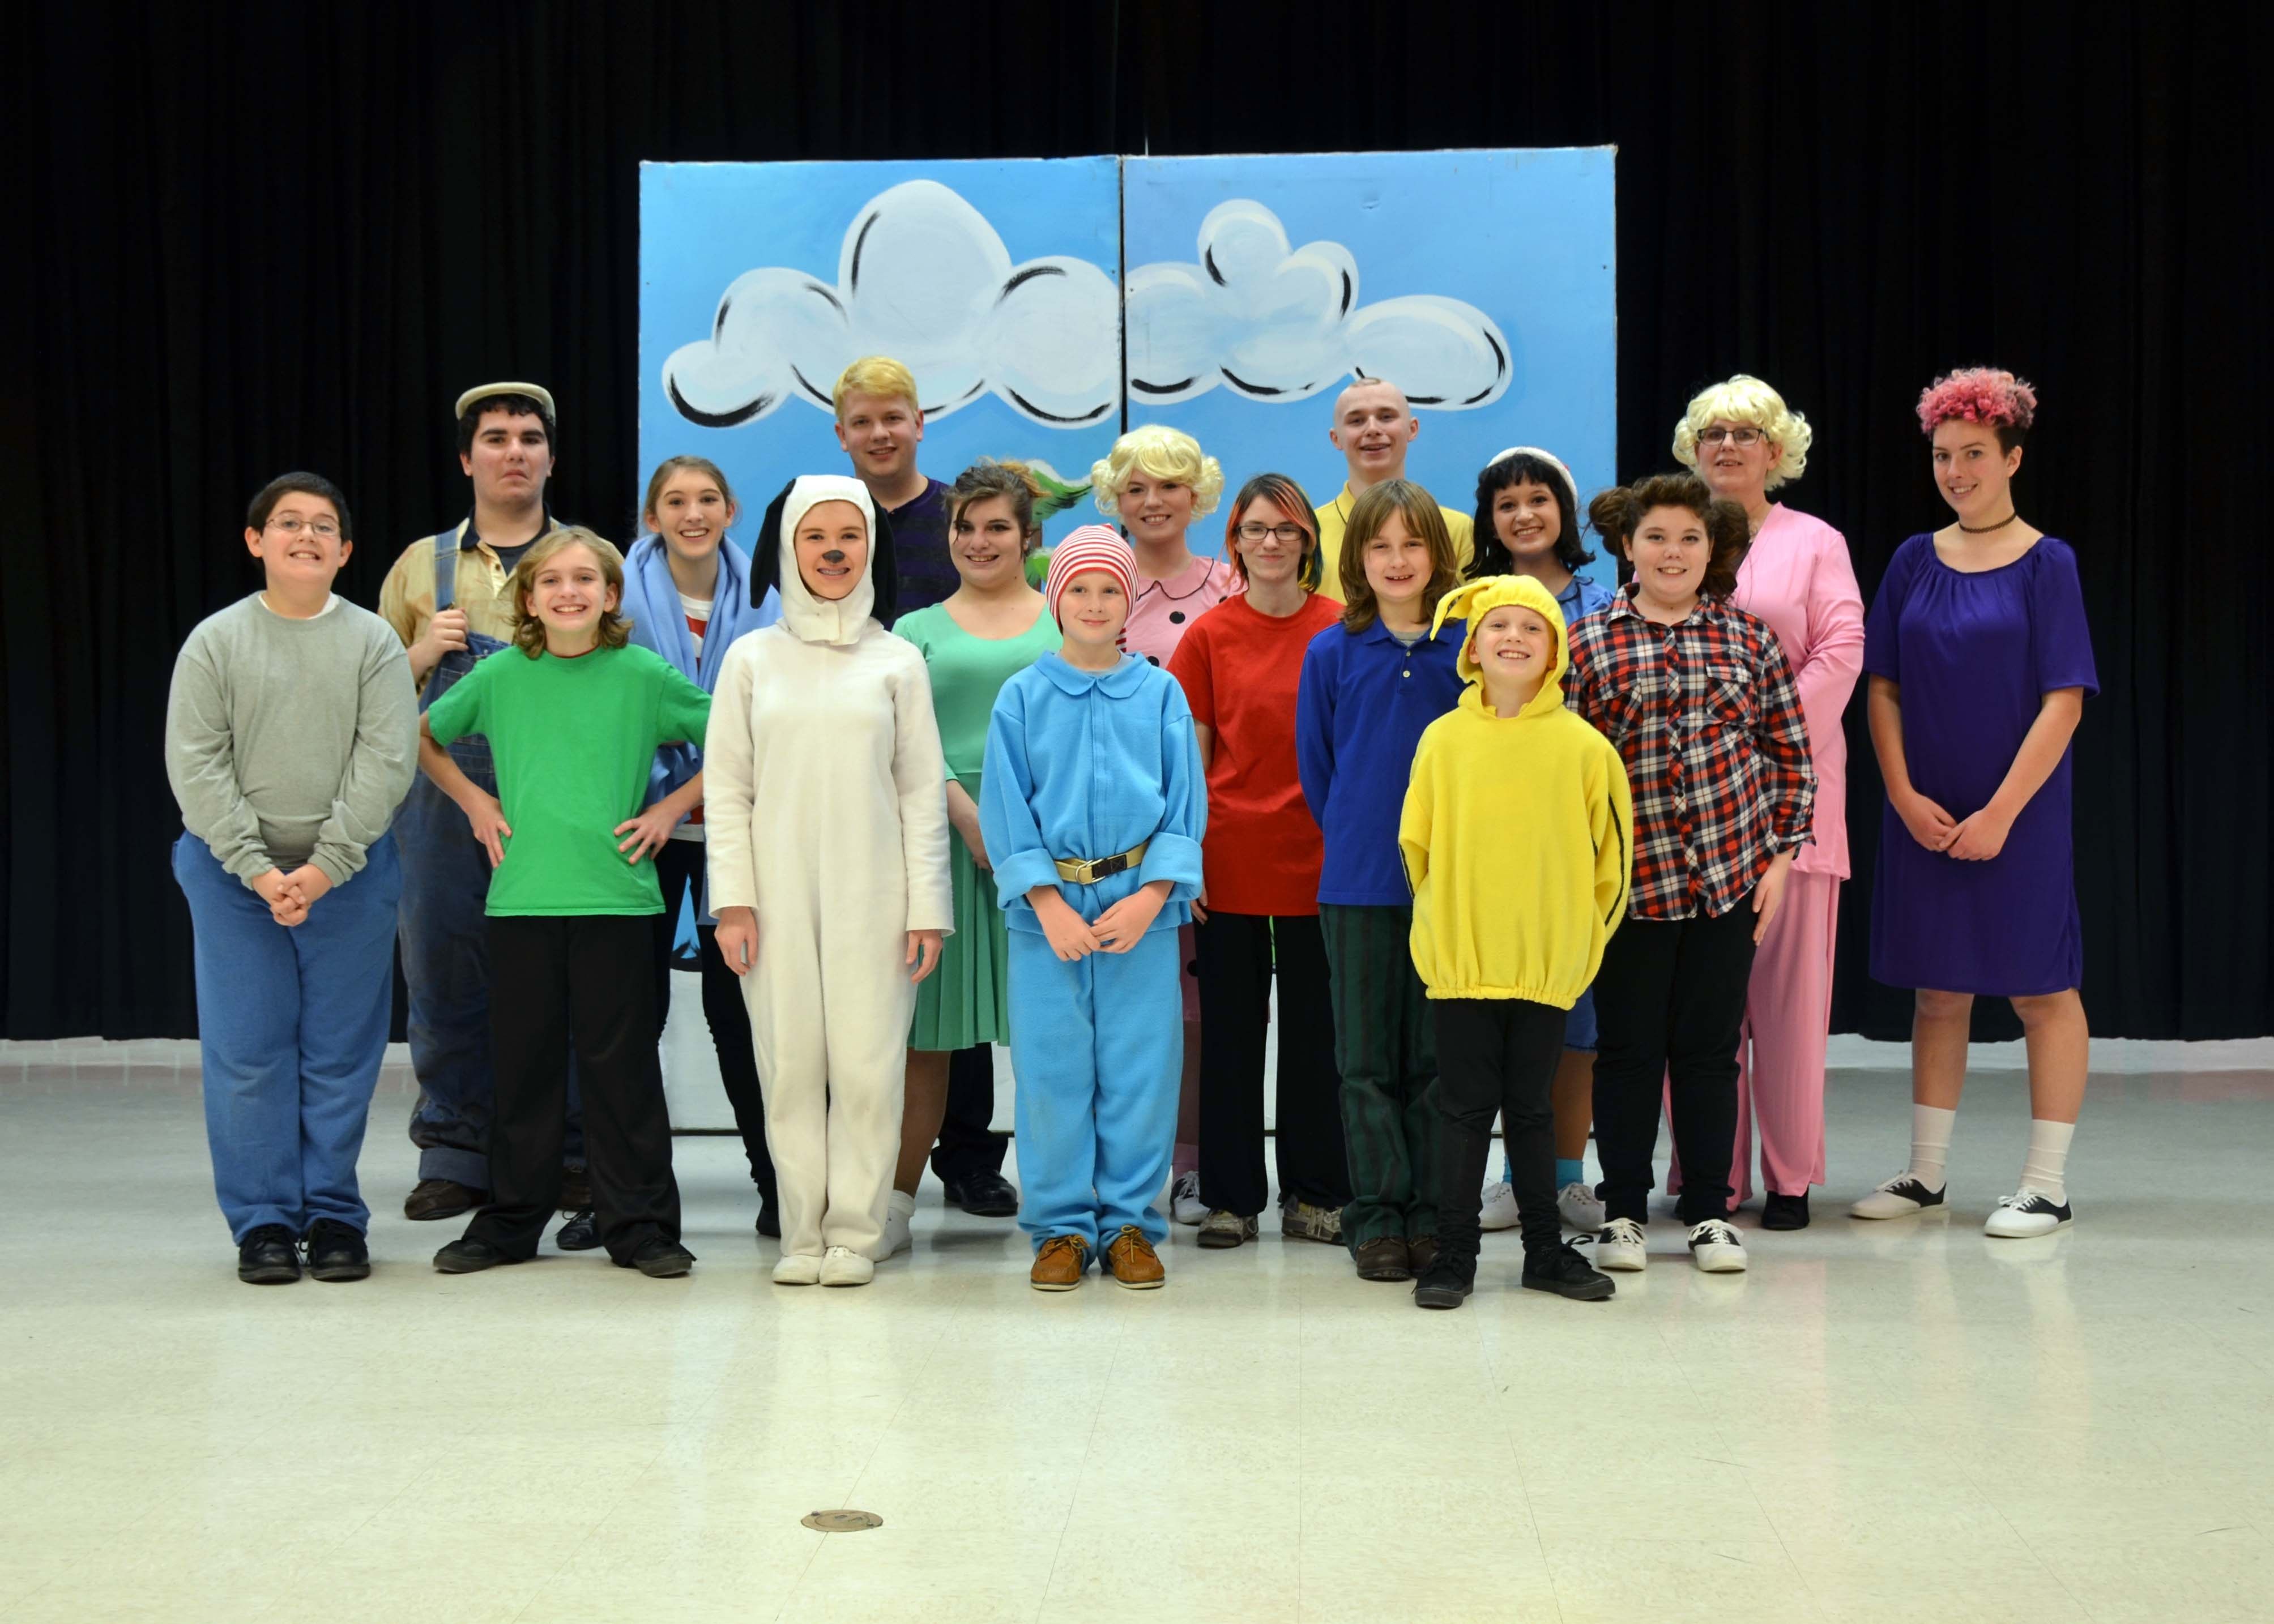 Pictured is the cast of